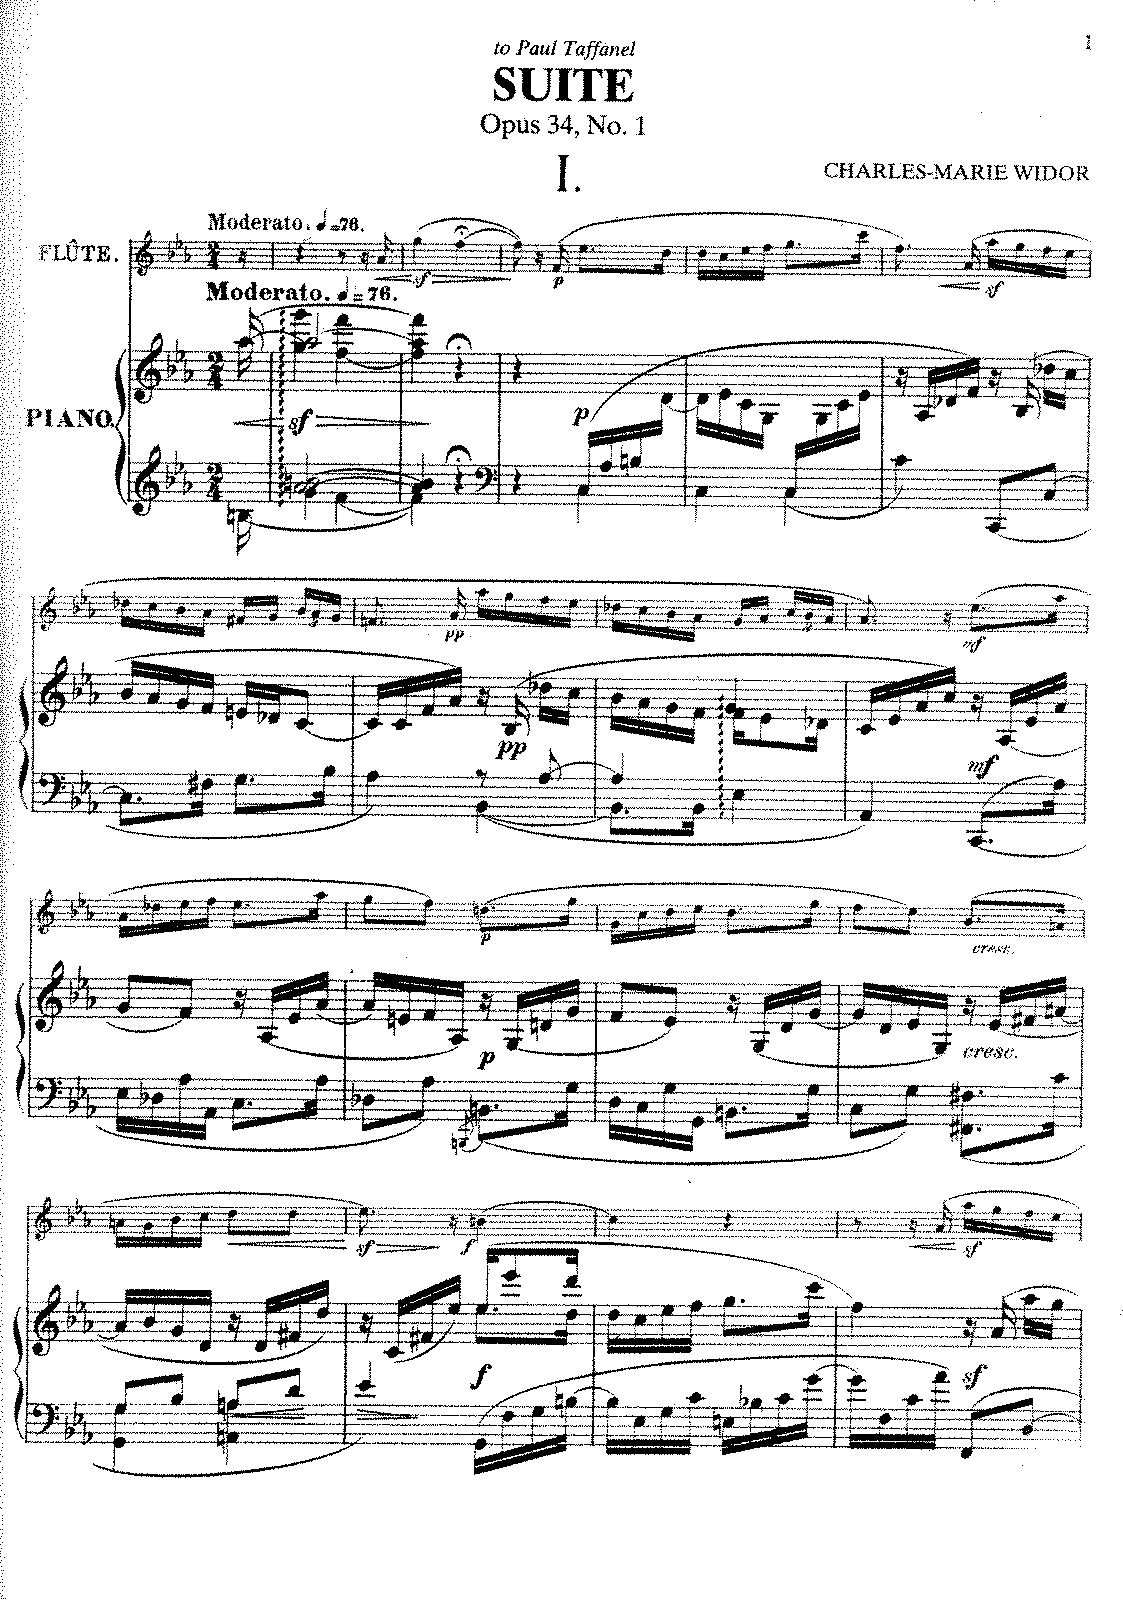 Widor op34n1 Suite for flute and piano.pdf